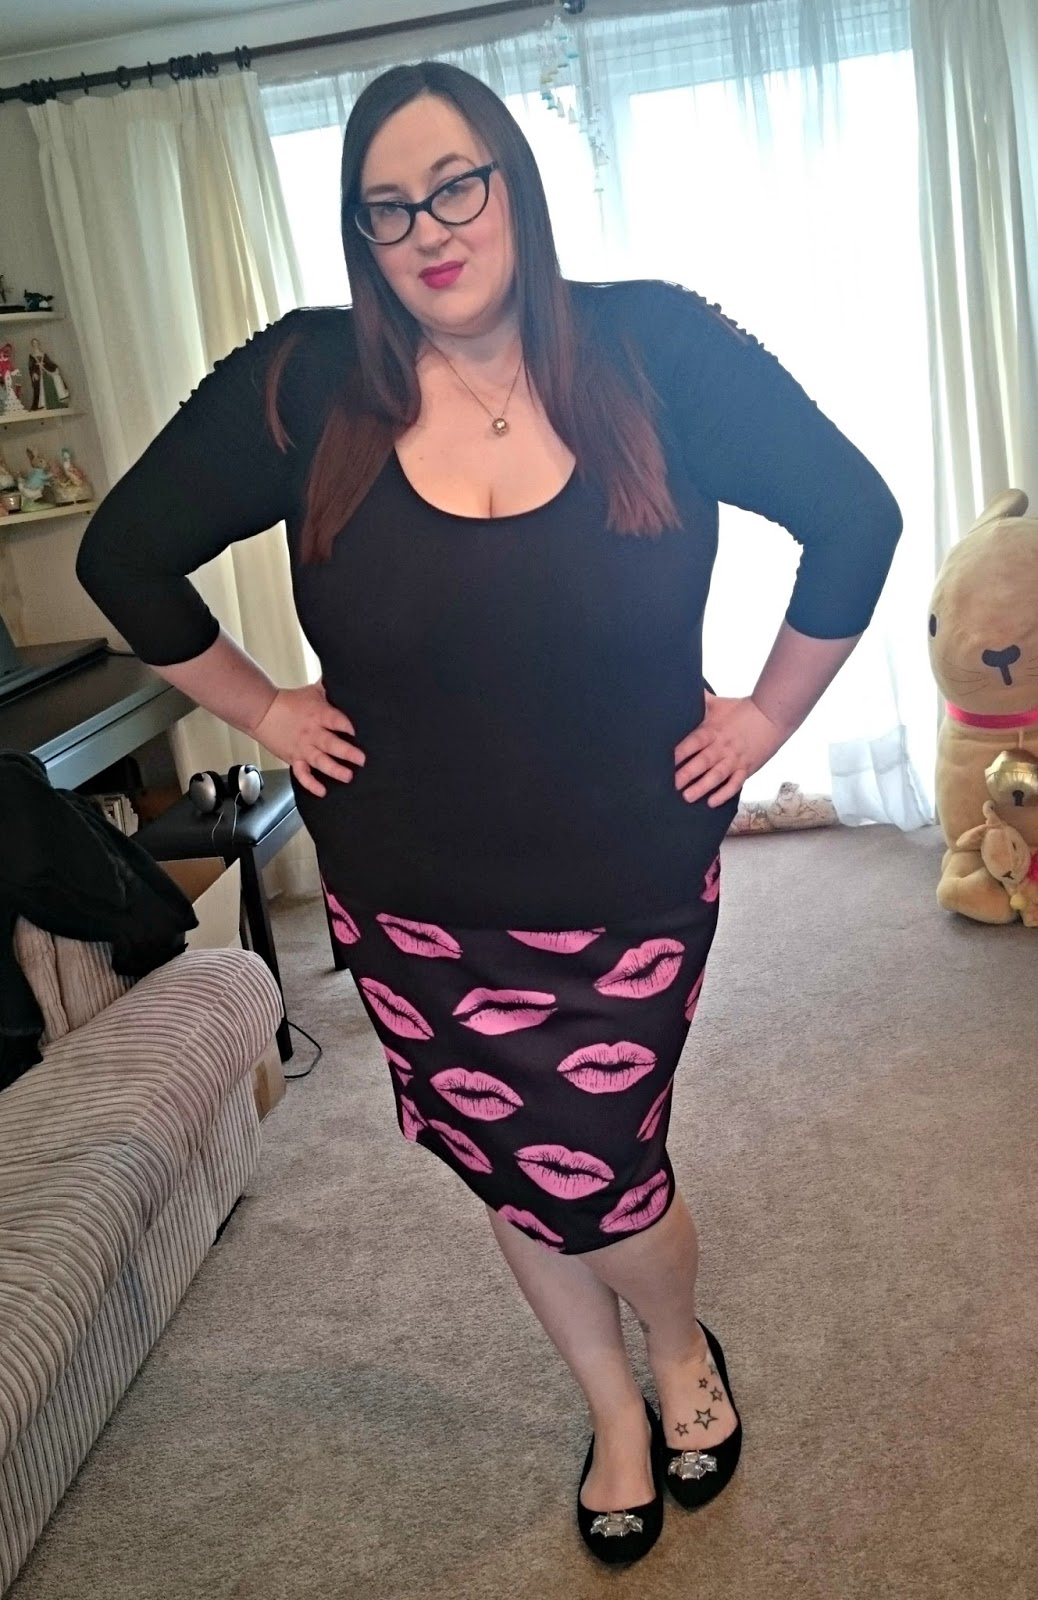 Chubby people blogs